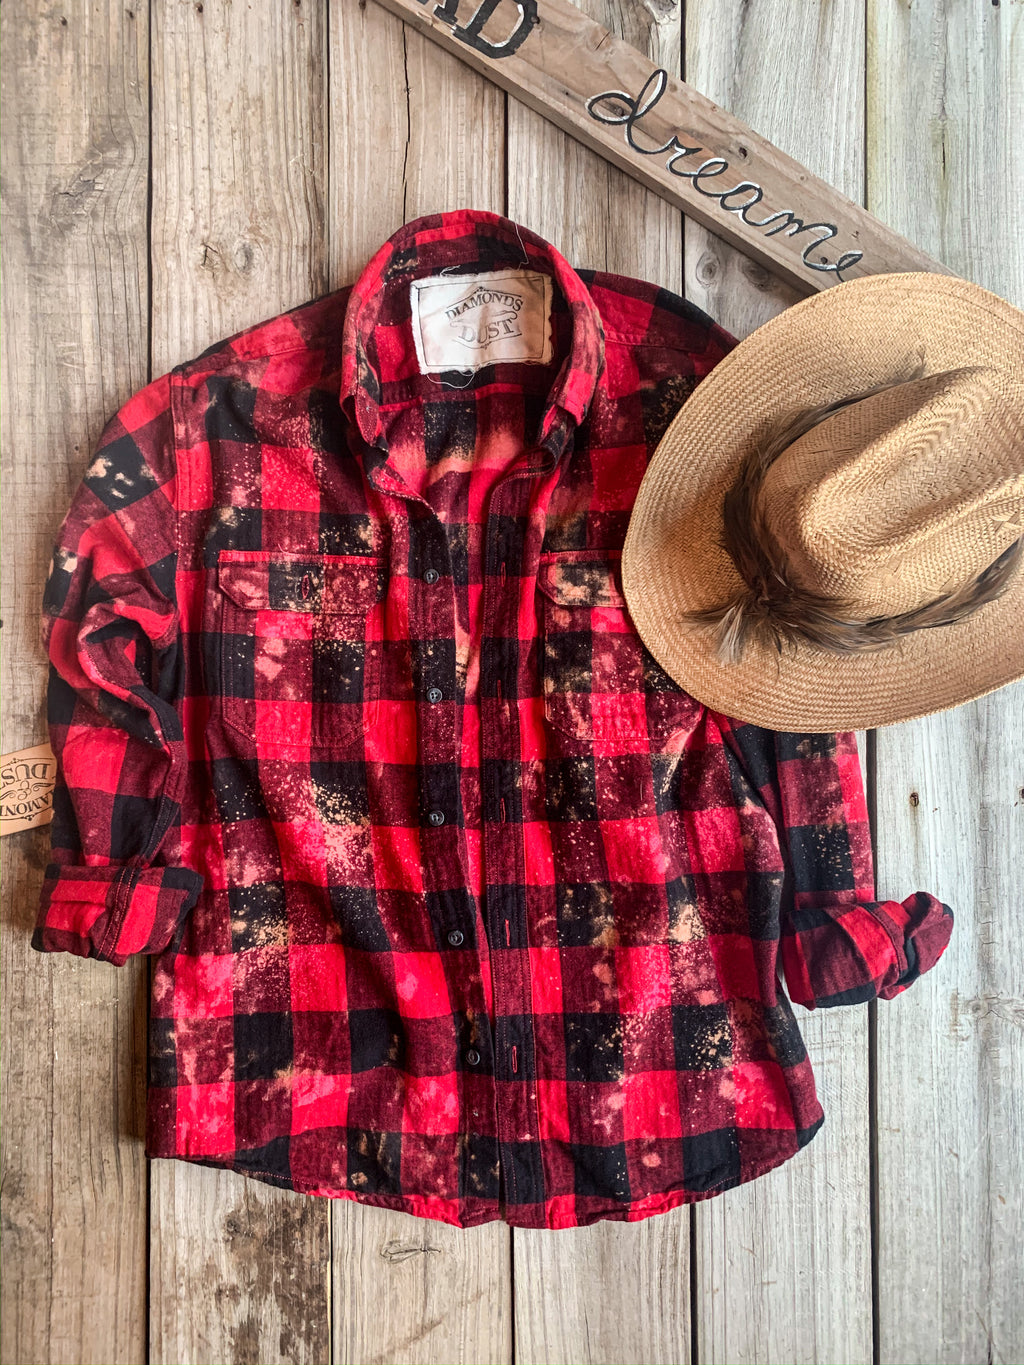 Take No Bull Signature Grungy Flannel - Bright Red